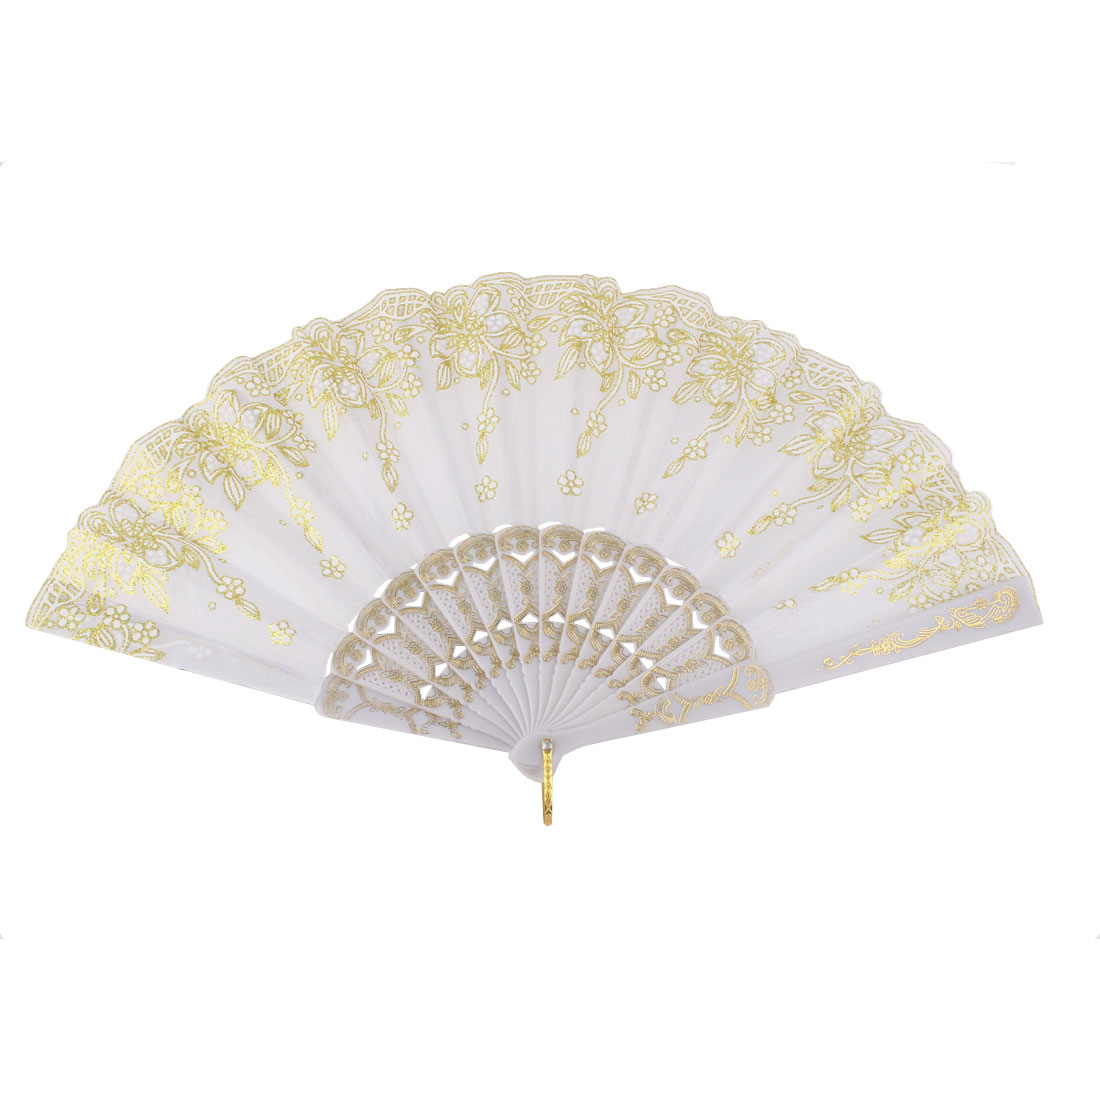 Plastic Frame Chinese Style Floral Pattern Folding Hand Fan White Gold Tone